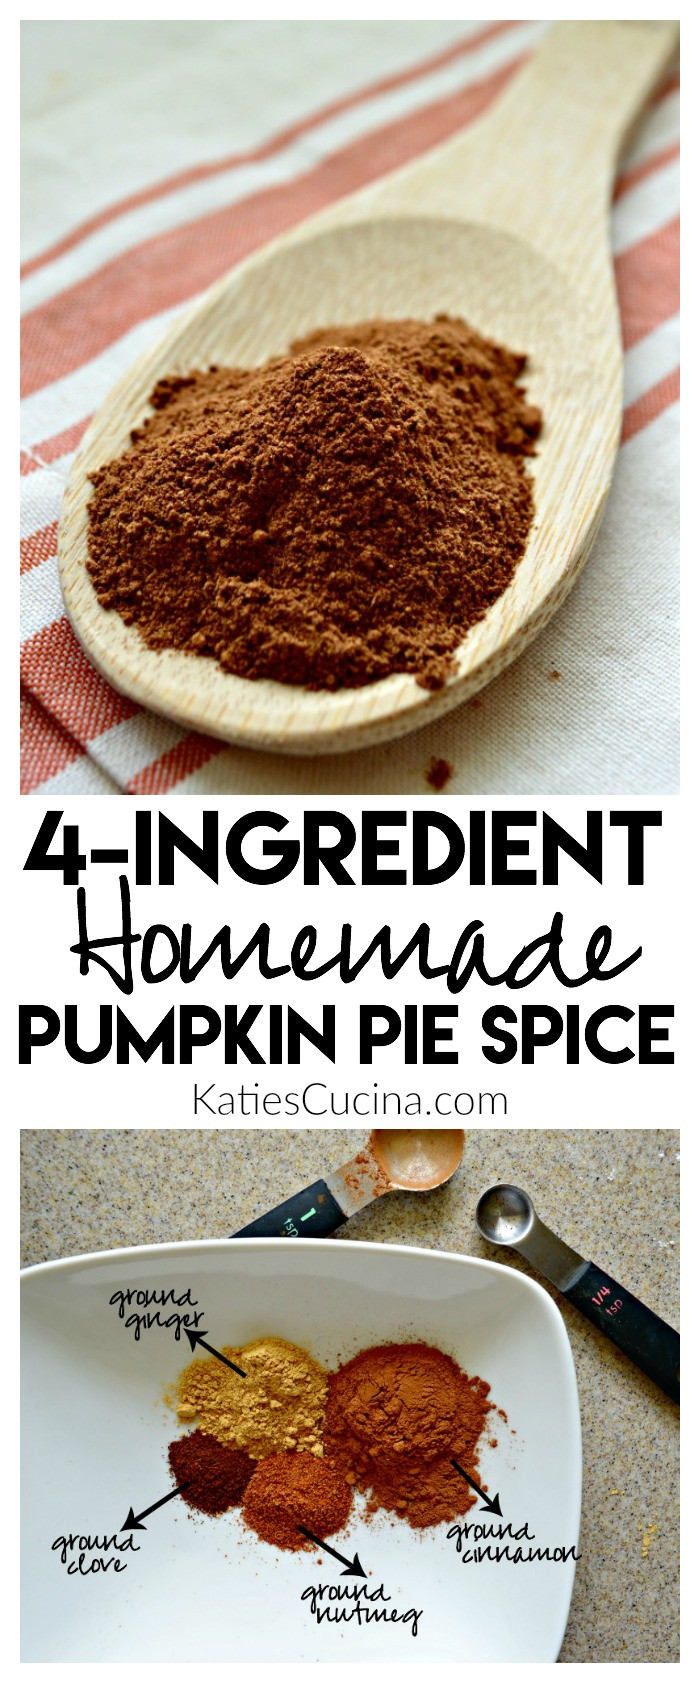 Homemade Pumpkin Pie Spice  Homemade Pumpkin Pie Spice Katie s Cucina